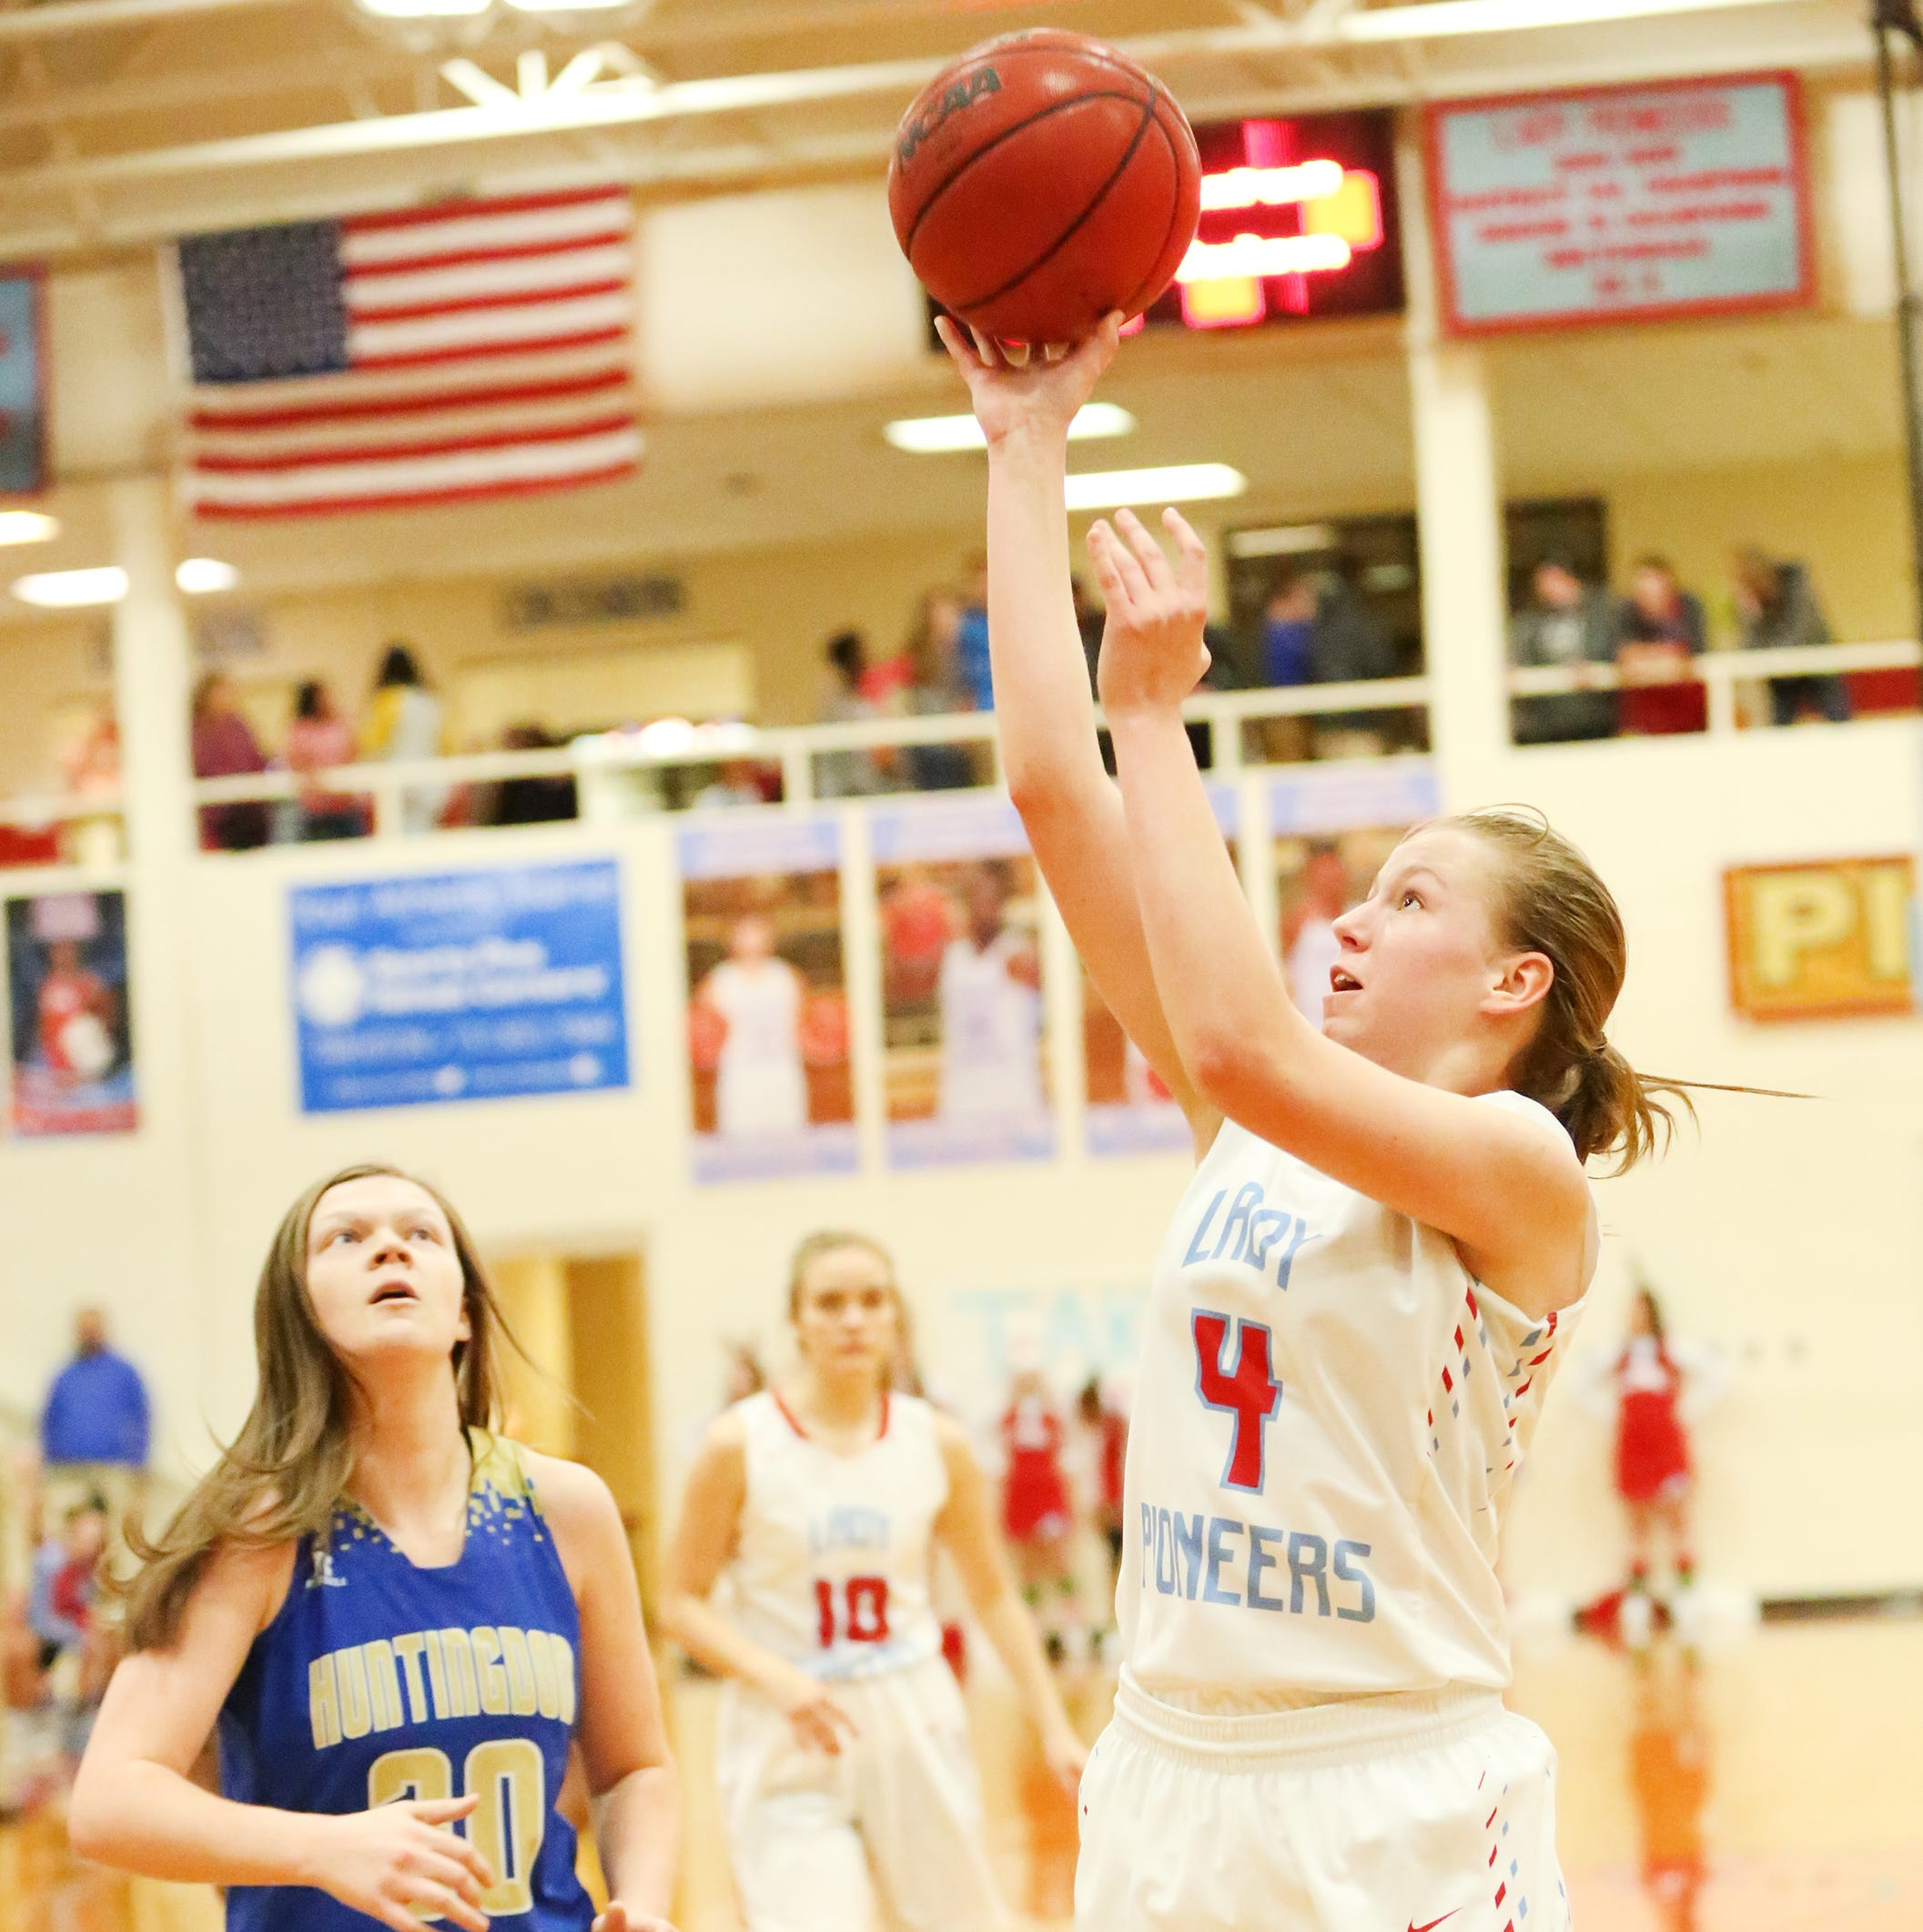 Gibson County girls basketball opens with 11 straight wins, 8 different leading scorers